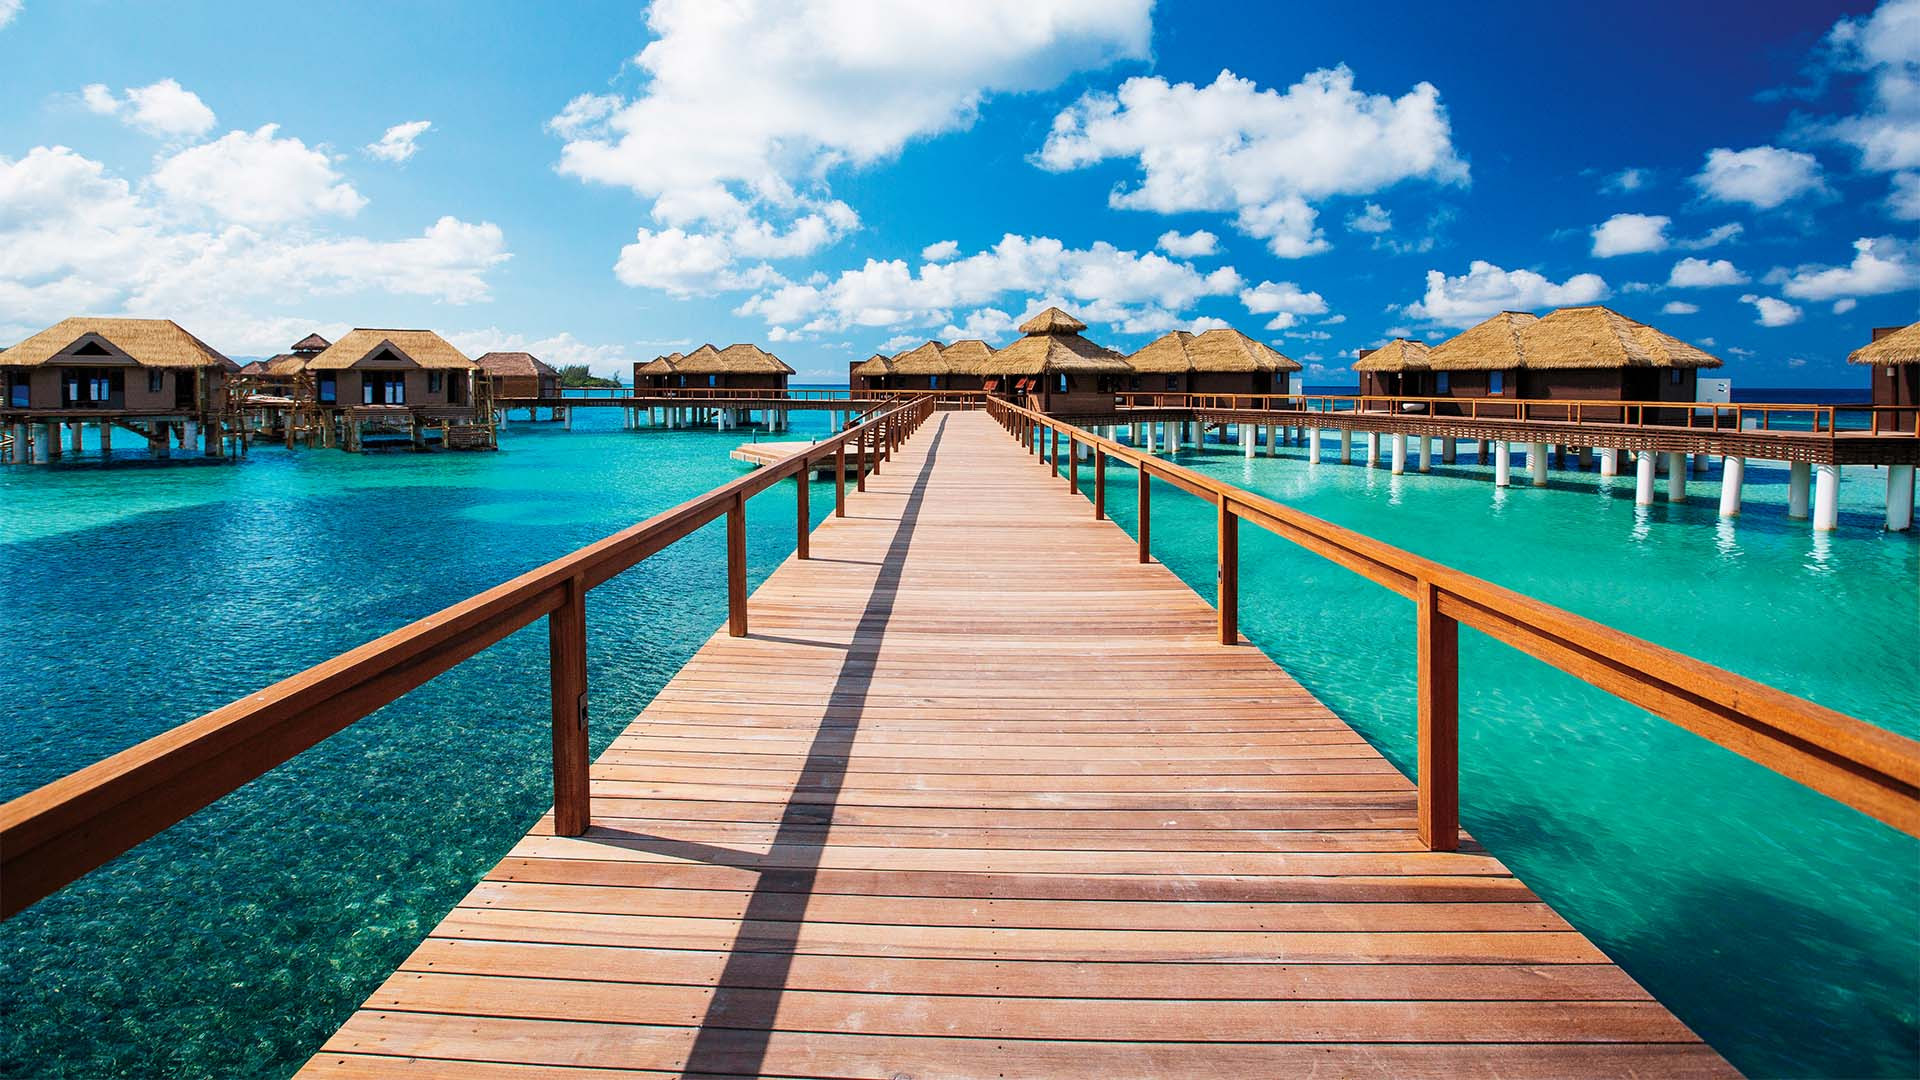 Butlers pontoon at Sandals overthe water villas